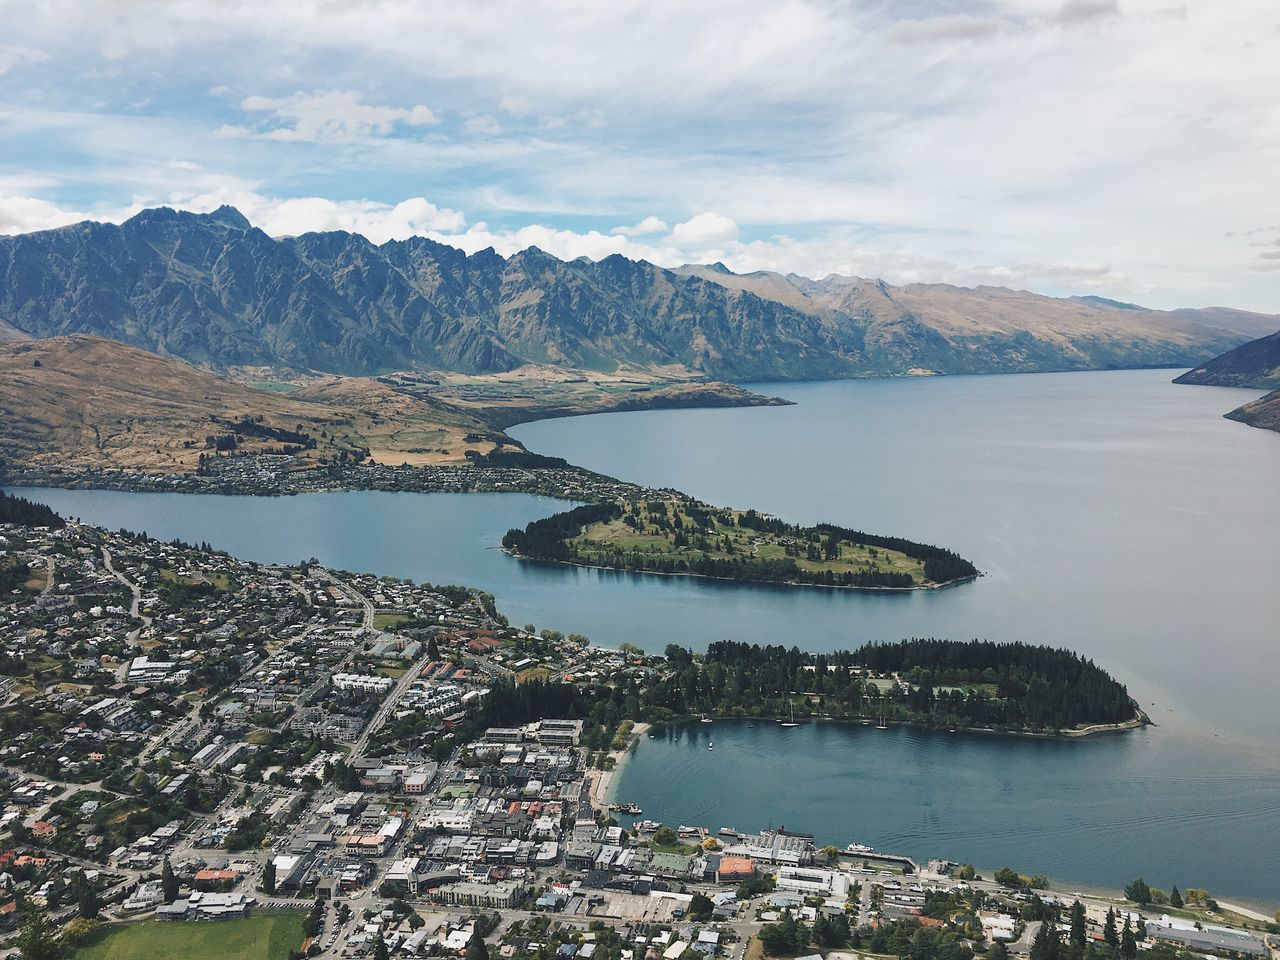 Water Sea Sky Mountain Beauty In Nature Nature Scenics Day Outdoors No People Scenery Bay Queenstown New Zealand